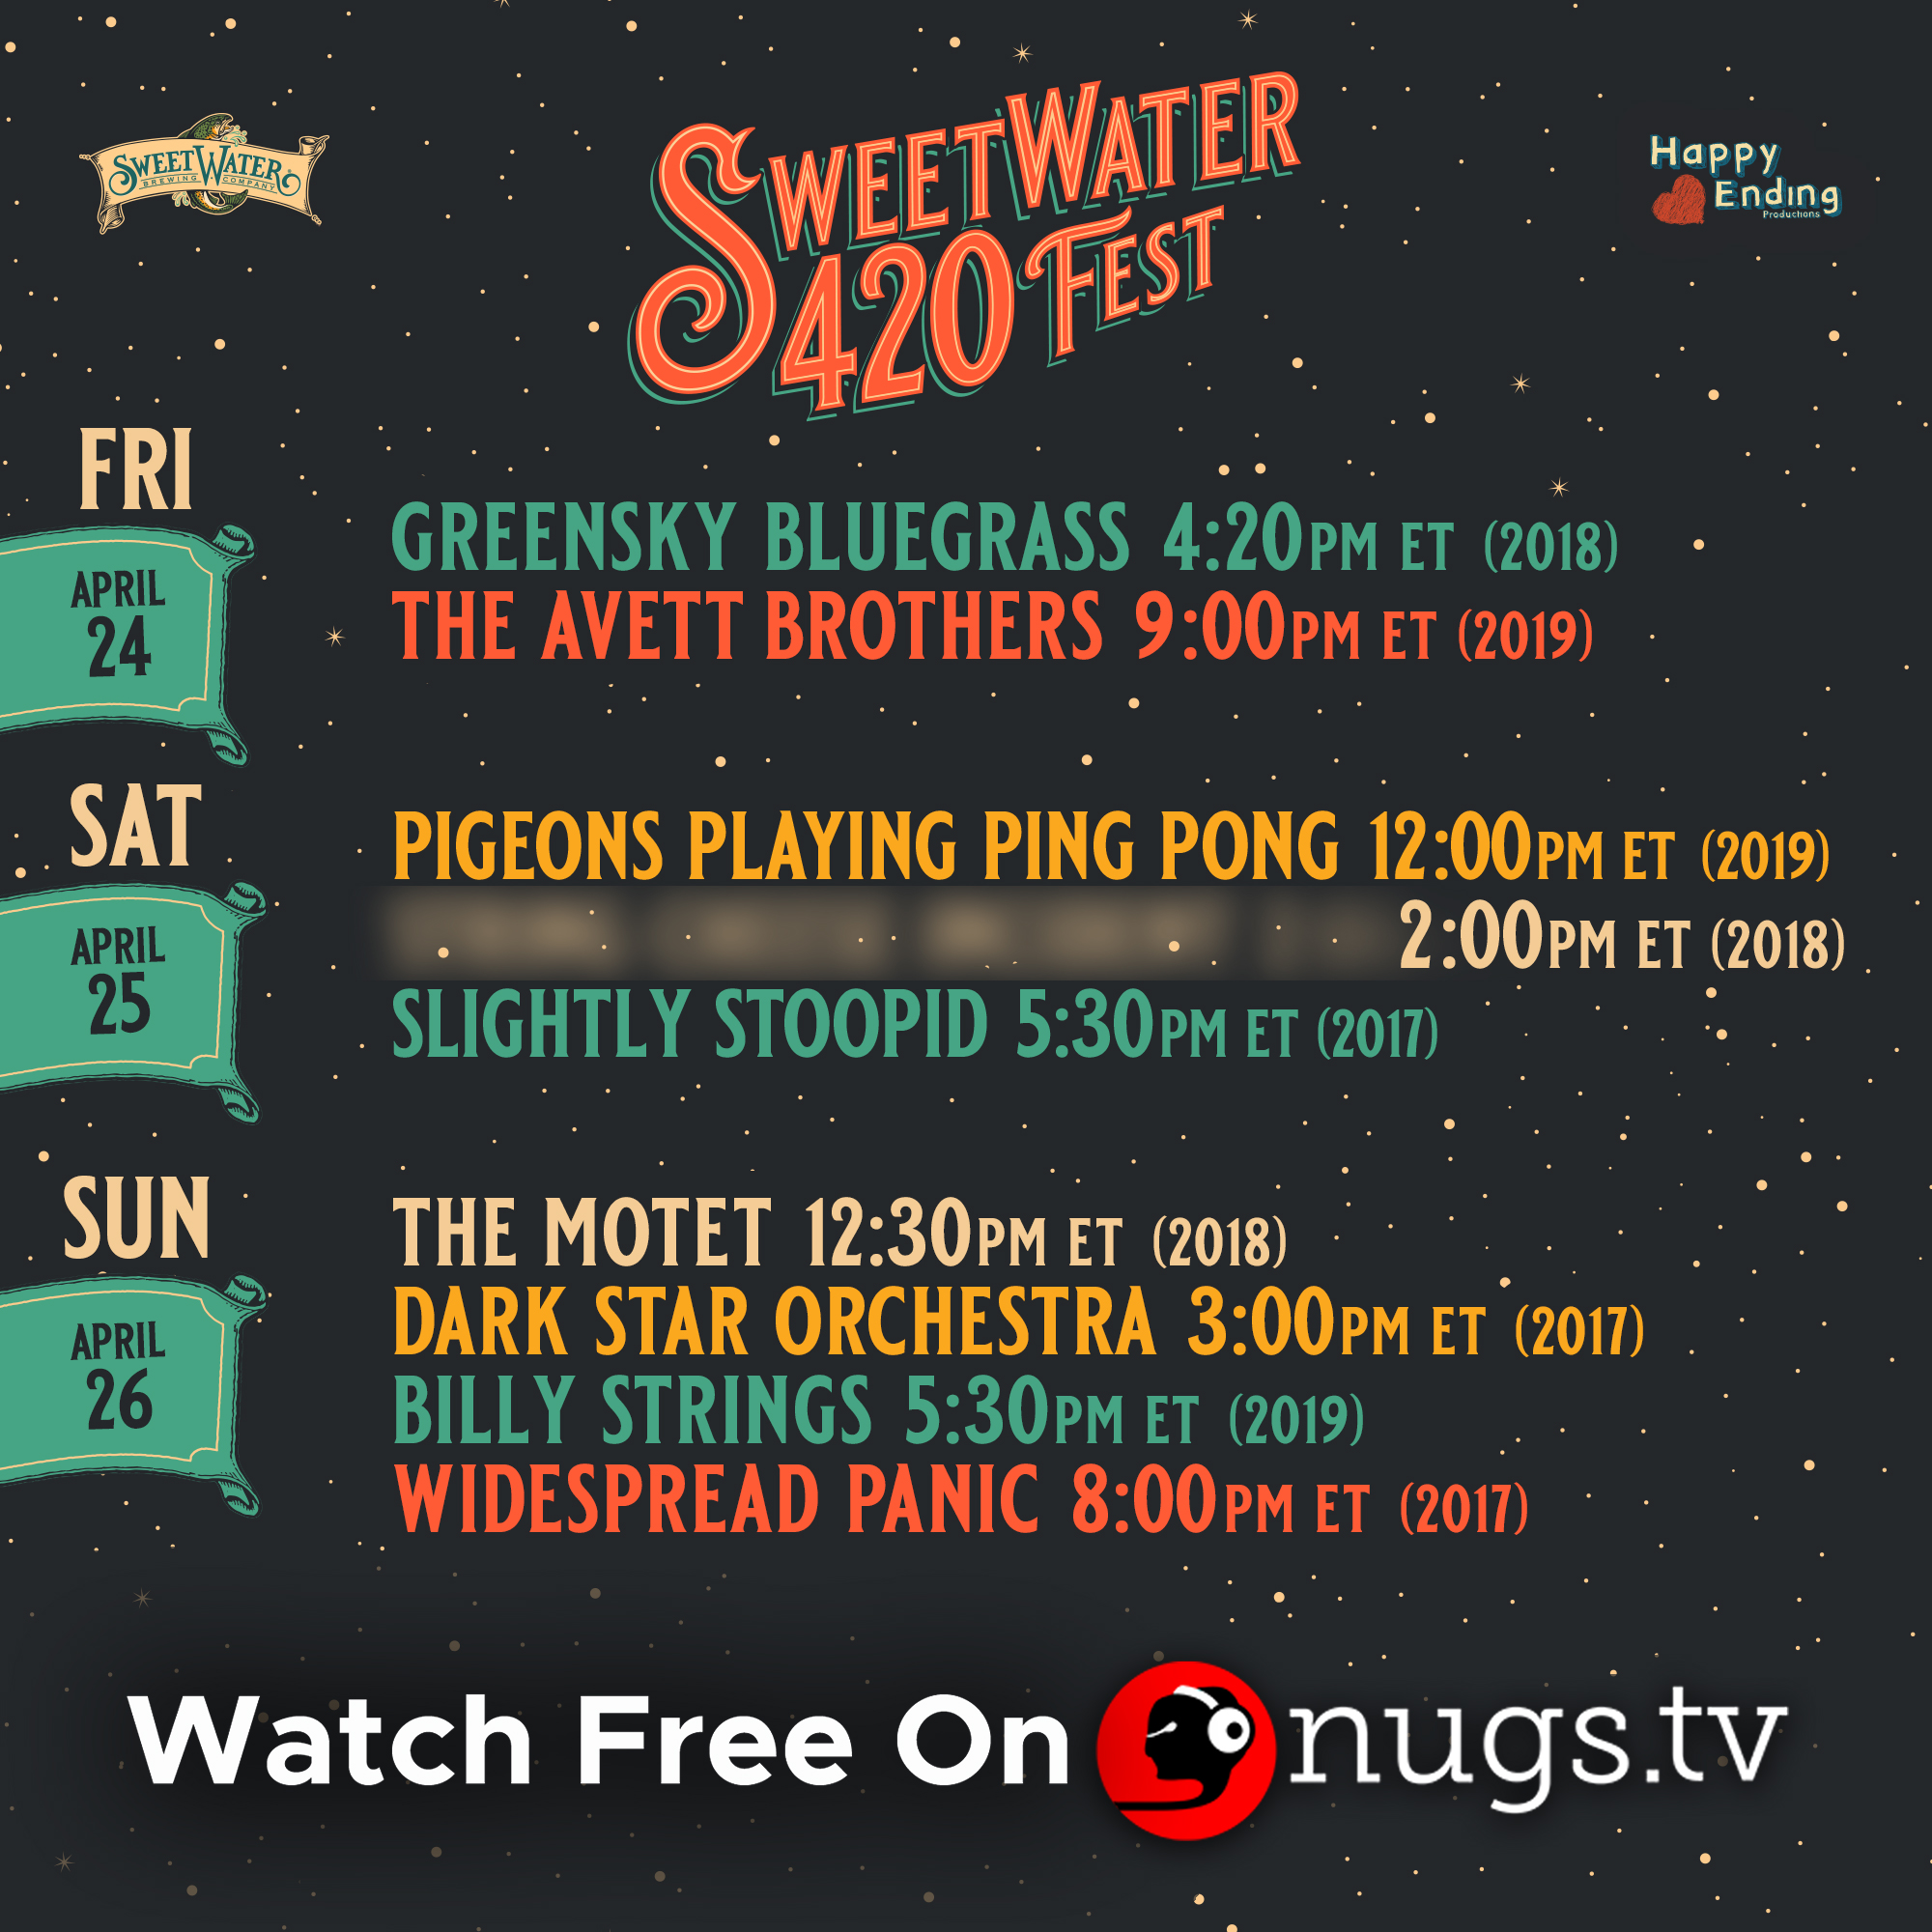 420 Fest - Stream in Place, Replaces Festival This Weekend